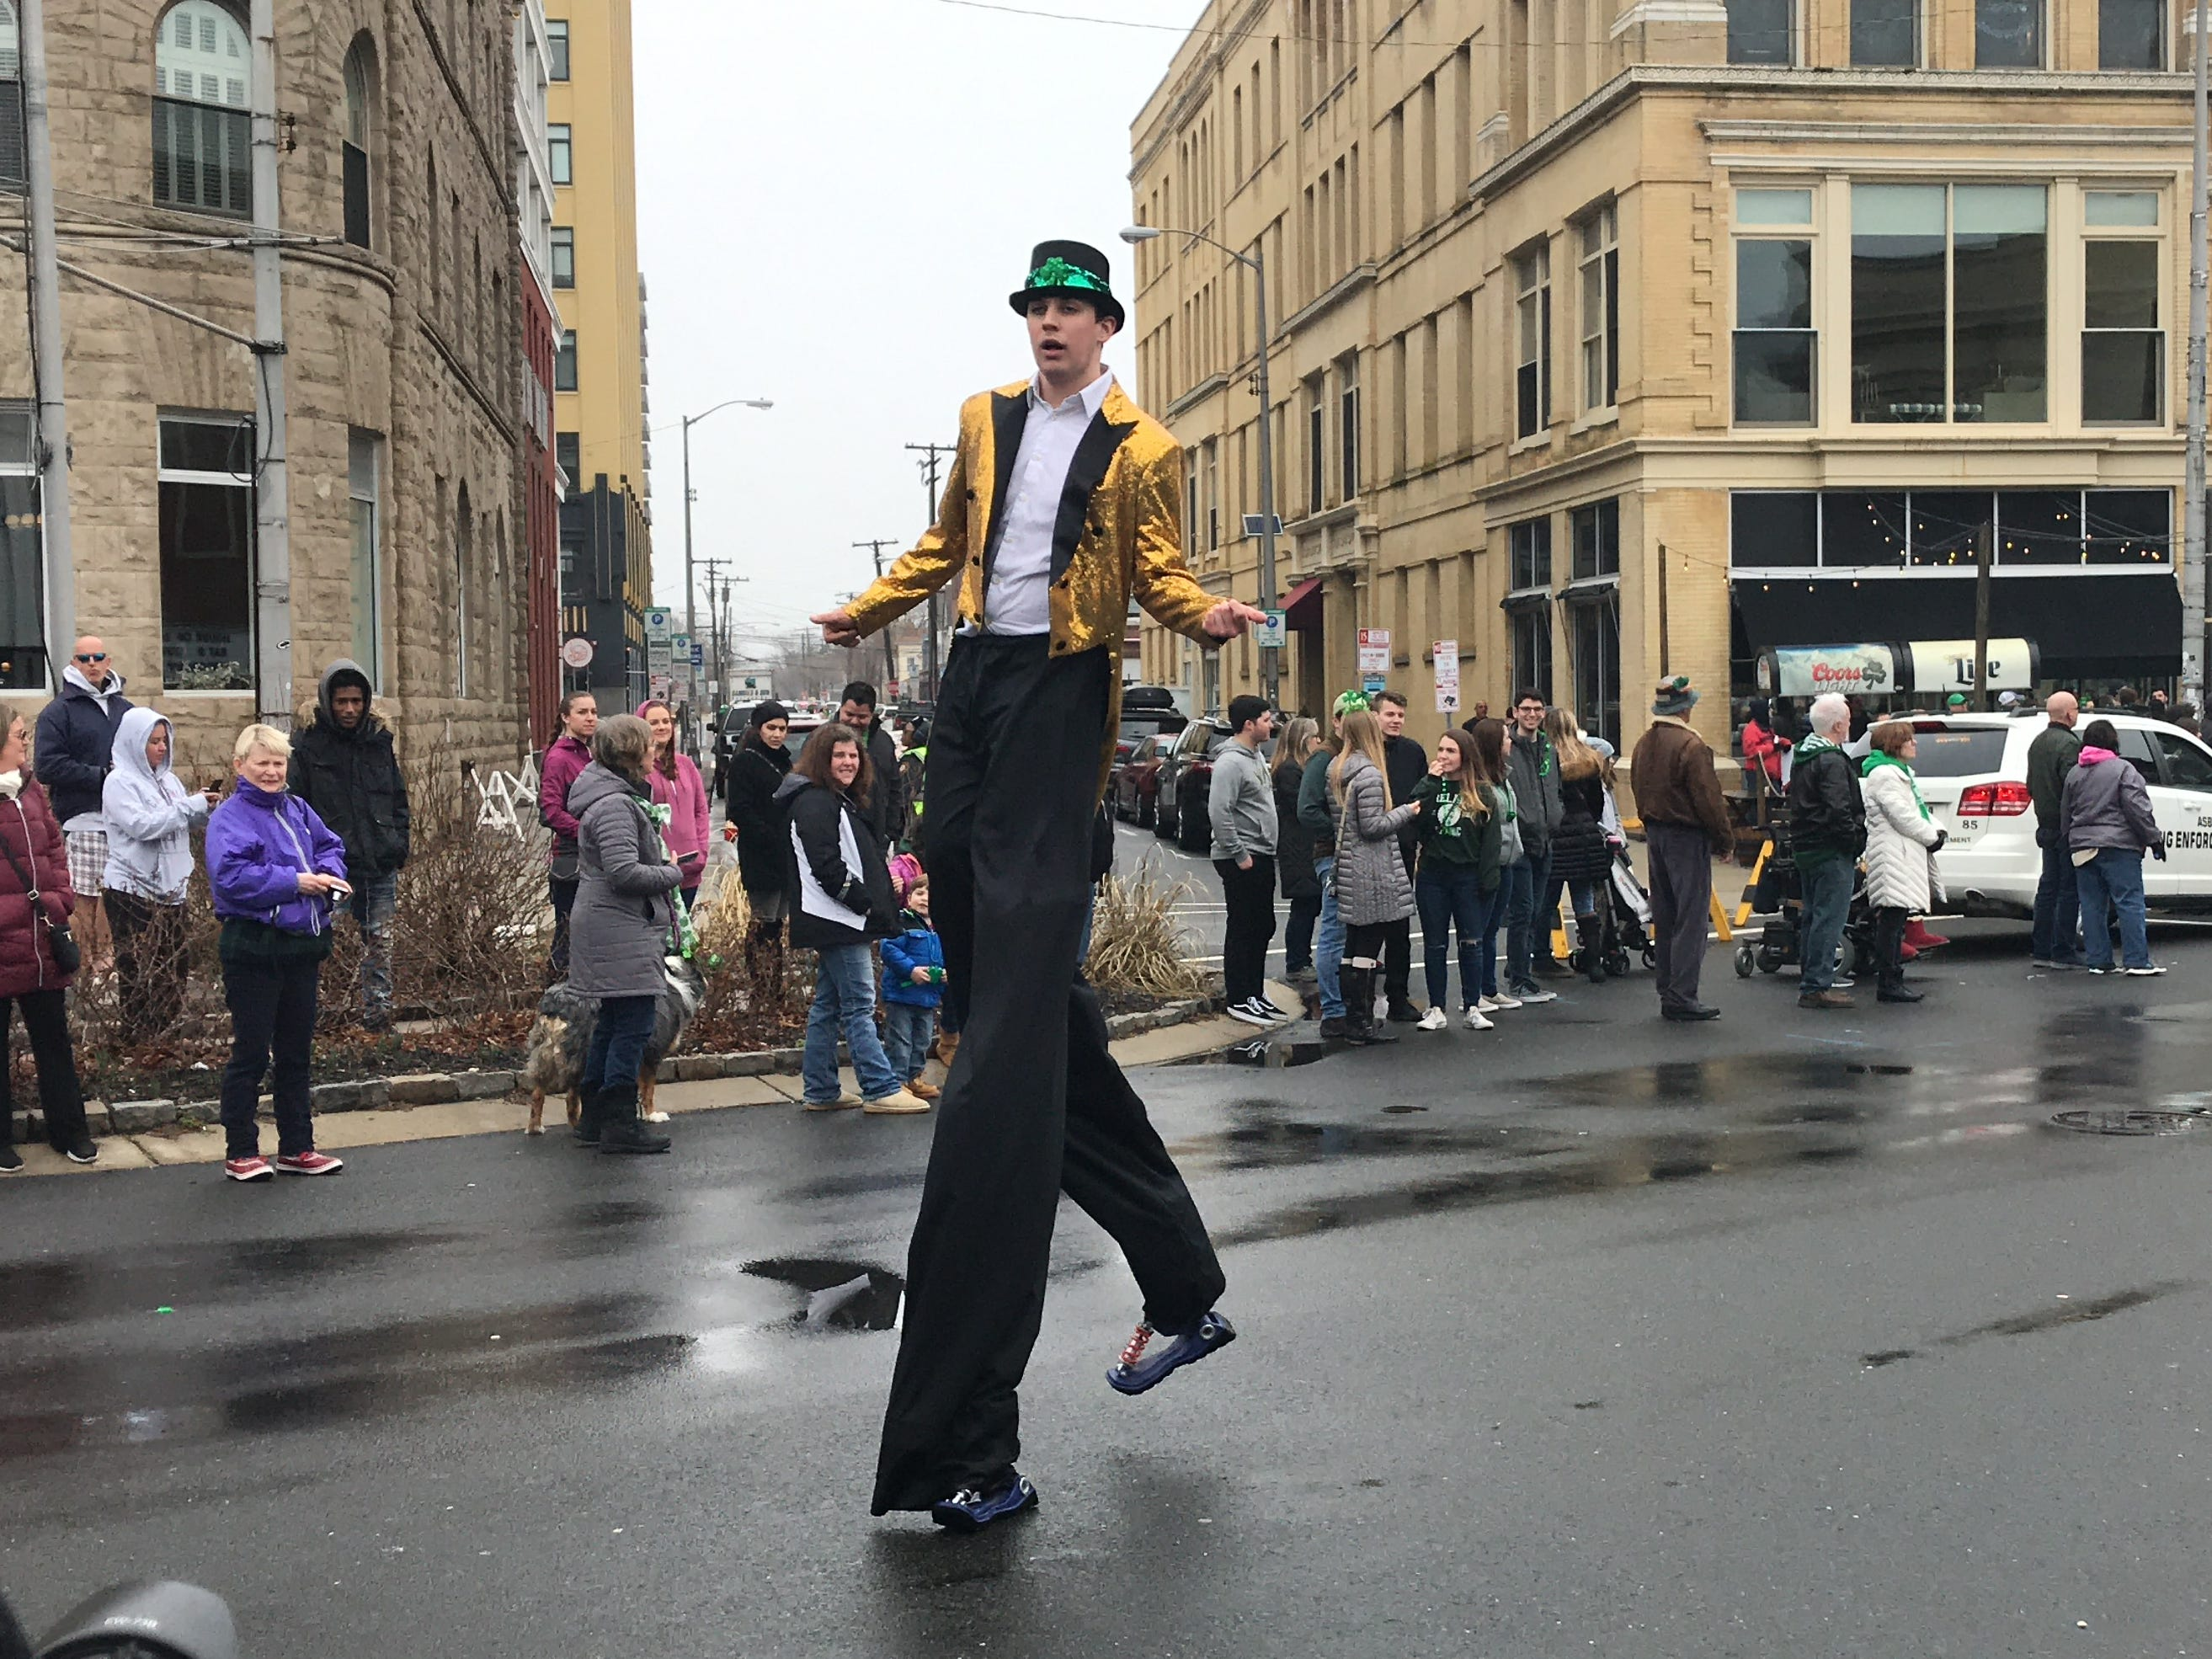 Asbury Park held its annual St. Patrick's Day Parade on March 10, 2019.